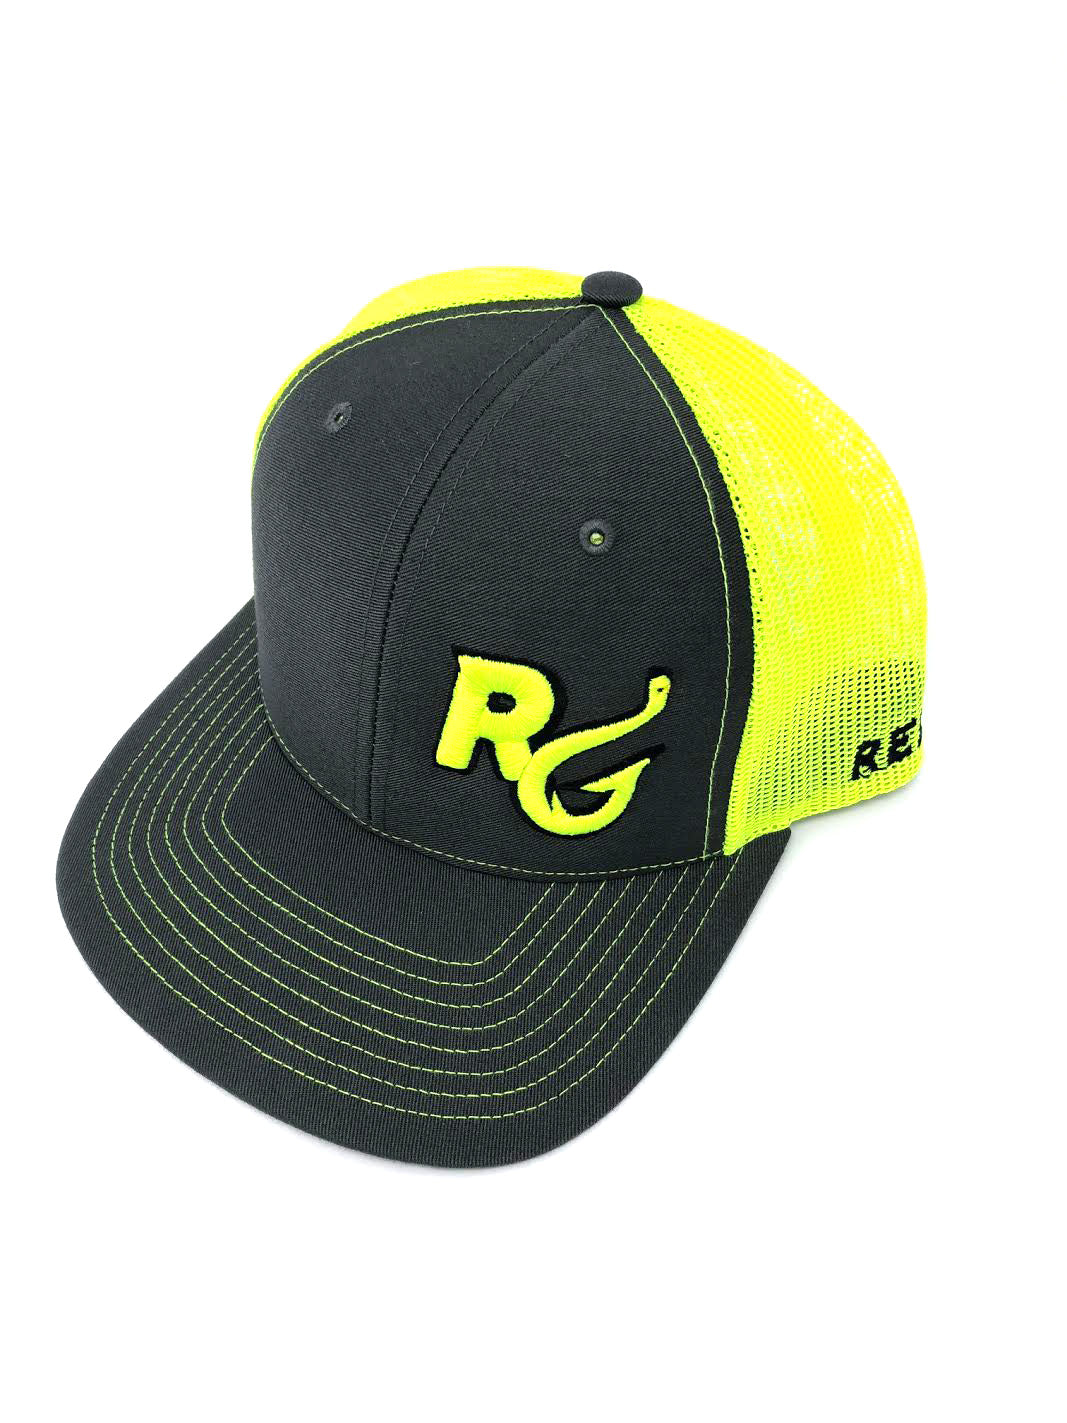 Reel Girls Logo Adjustable Trucker Hat - Charcoal with Neon Yellow - Destin Outdoors